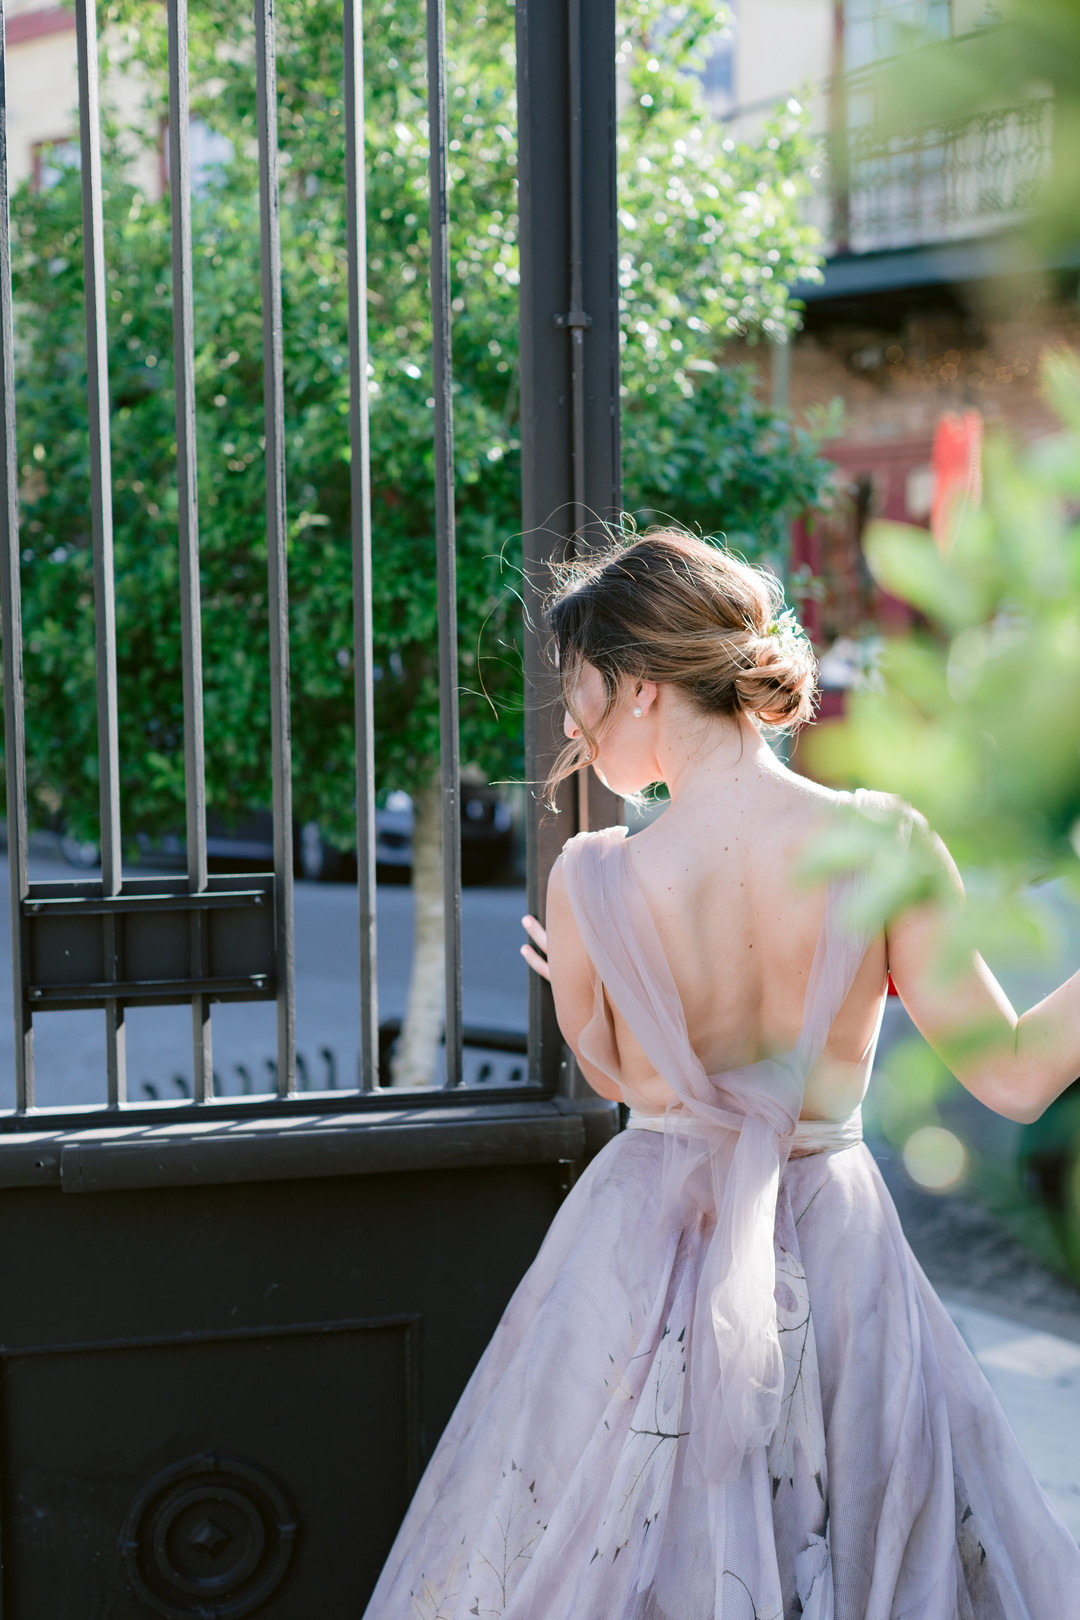 Il Mercato Wedding, New Orleans Wedding, Magazine Street Wedding, plunging back wedding dress, colorful wedding dress